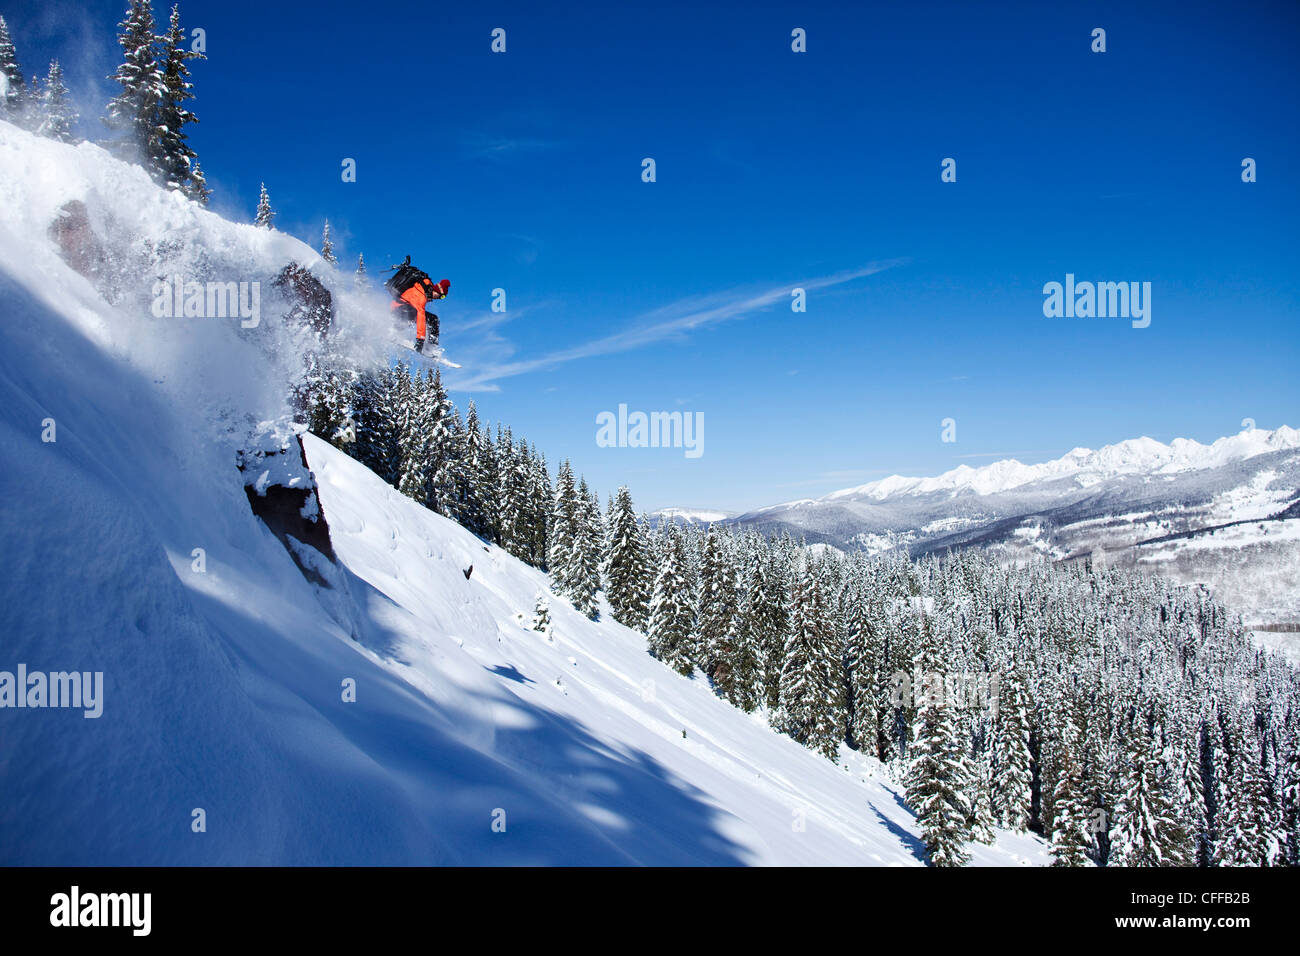 A athletic snowboarder jumping off a cliff on a sunny powder day in Colorado. - Stock Image